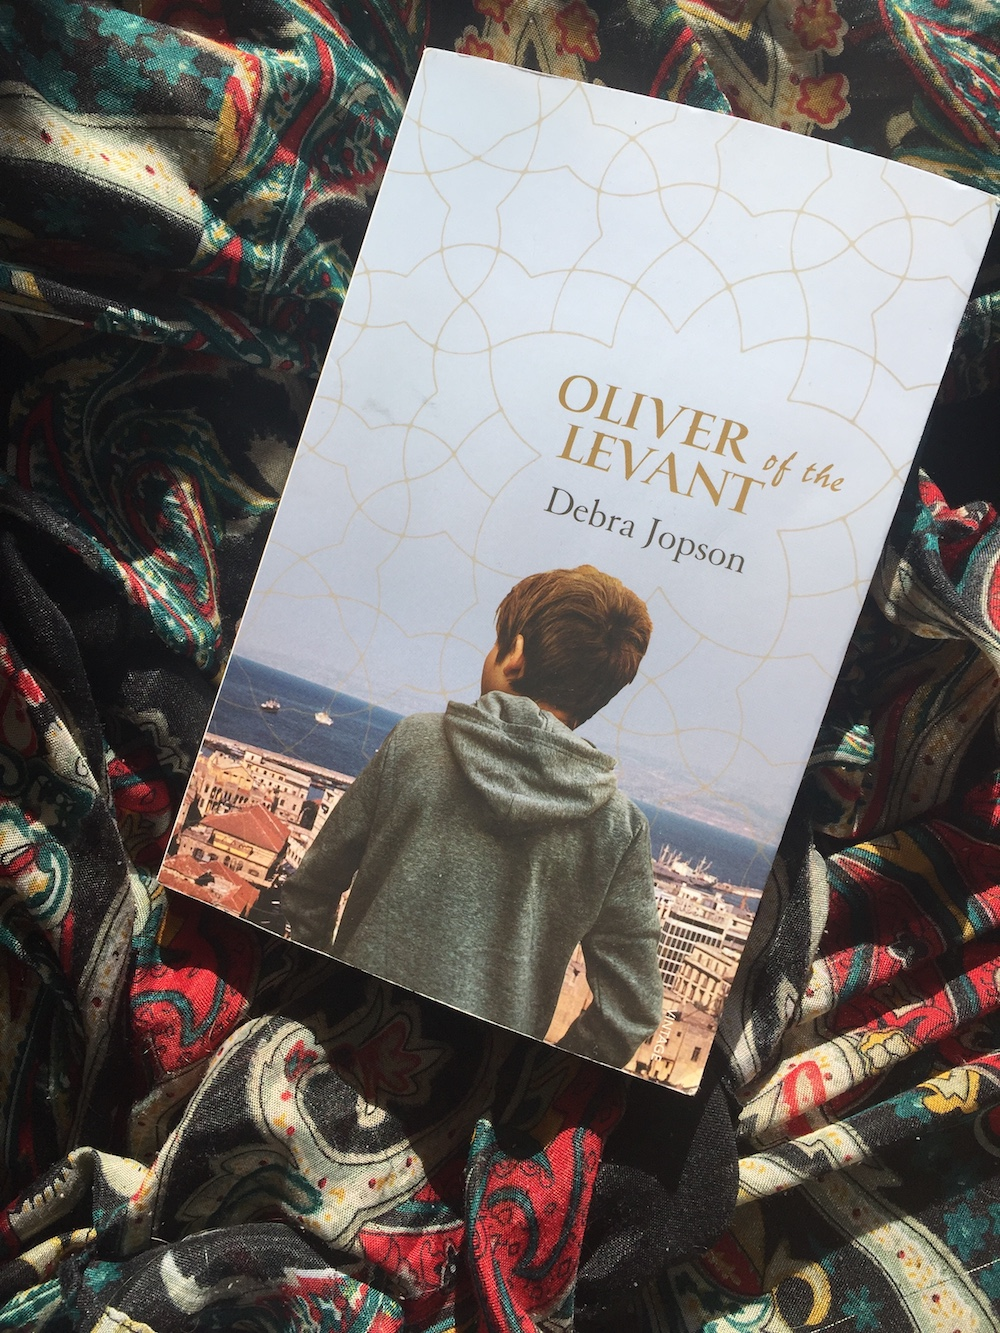 Oliver of the Levant Debra Jopson